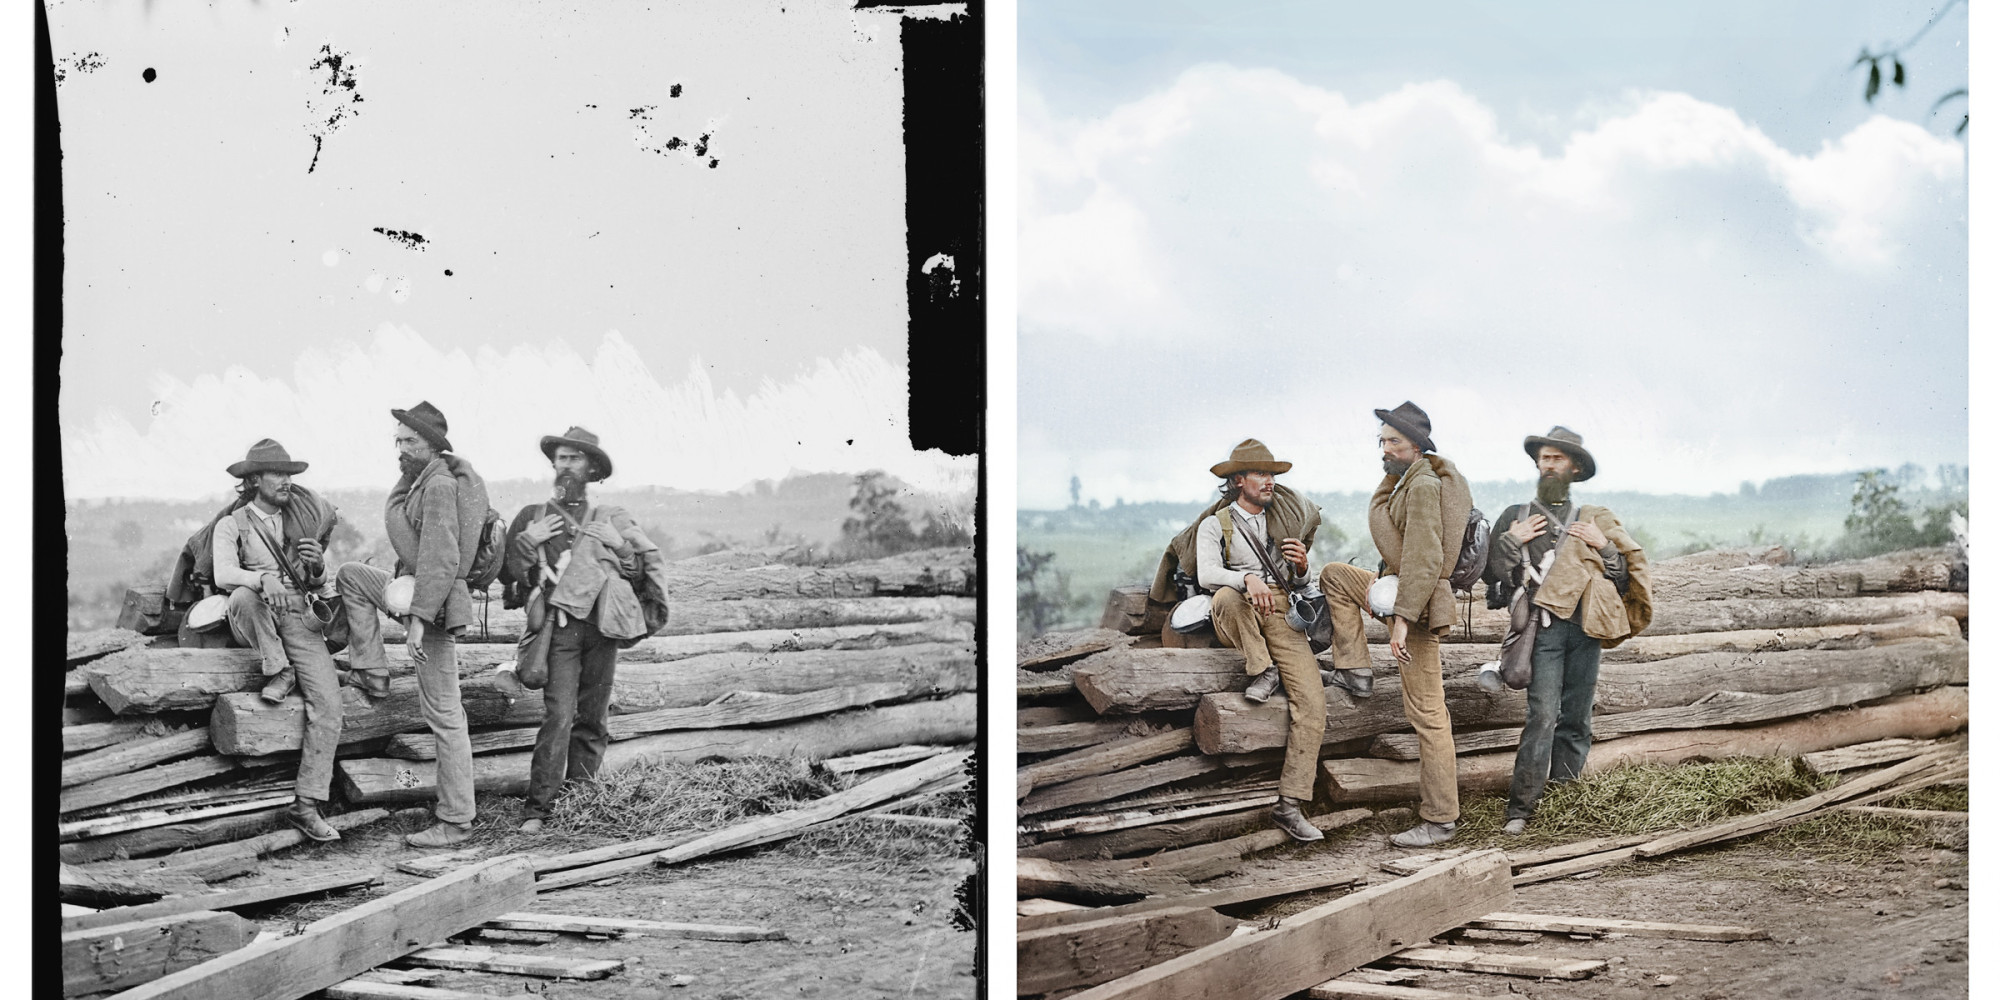 Black and white war photos Animate text or objects - PowerPoint - Microsoft Office Support